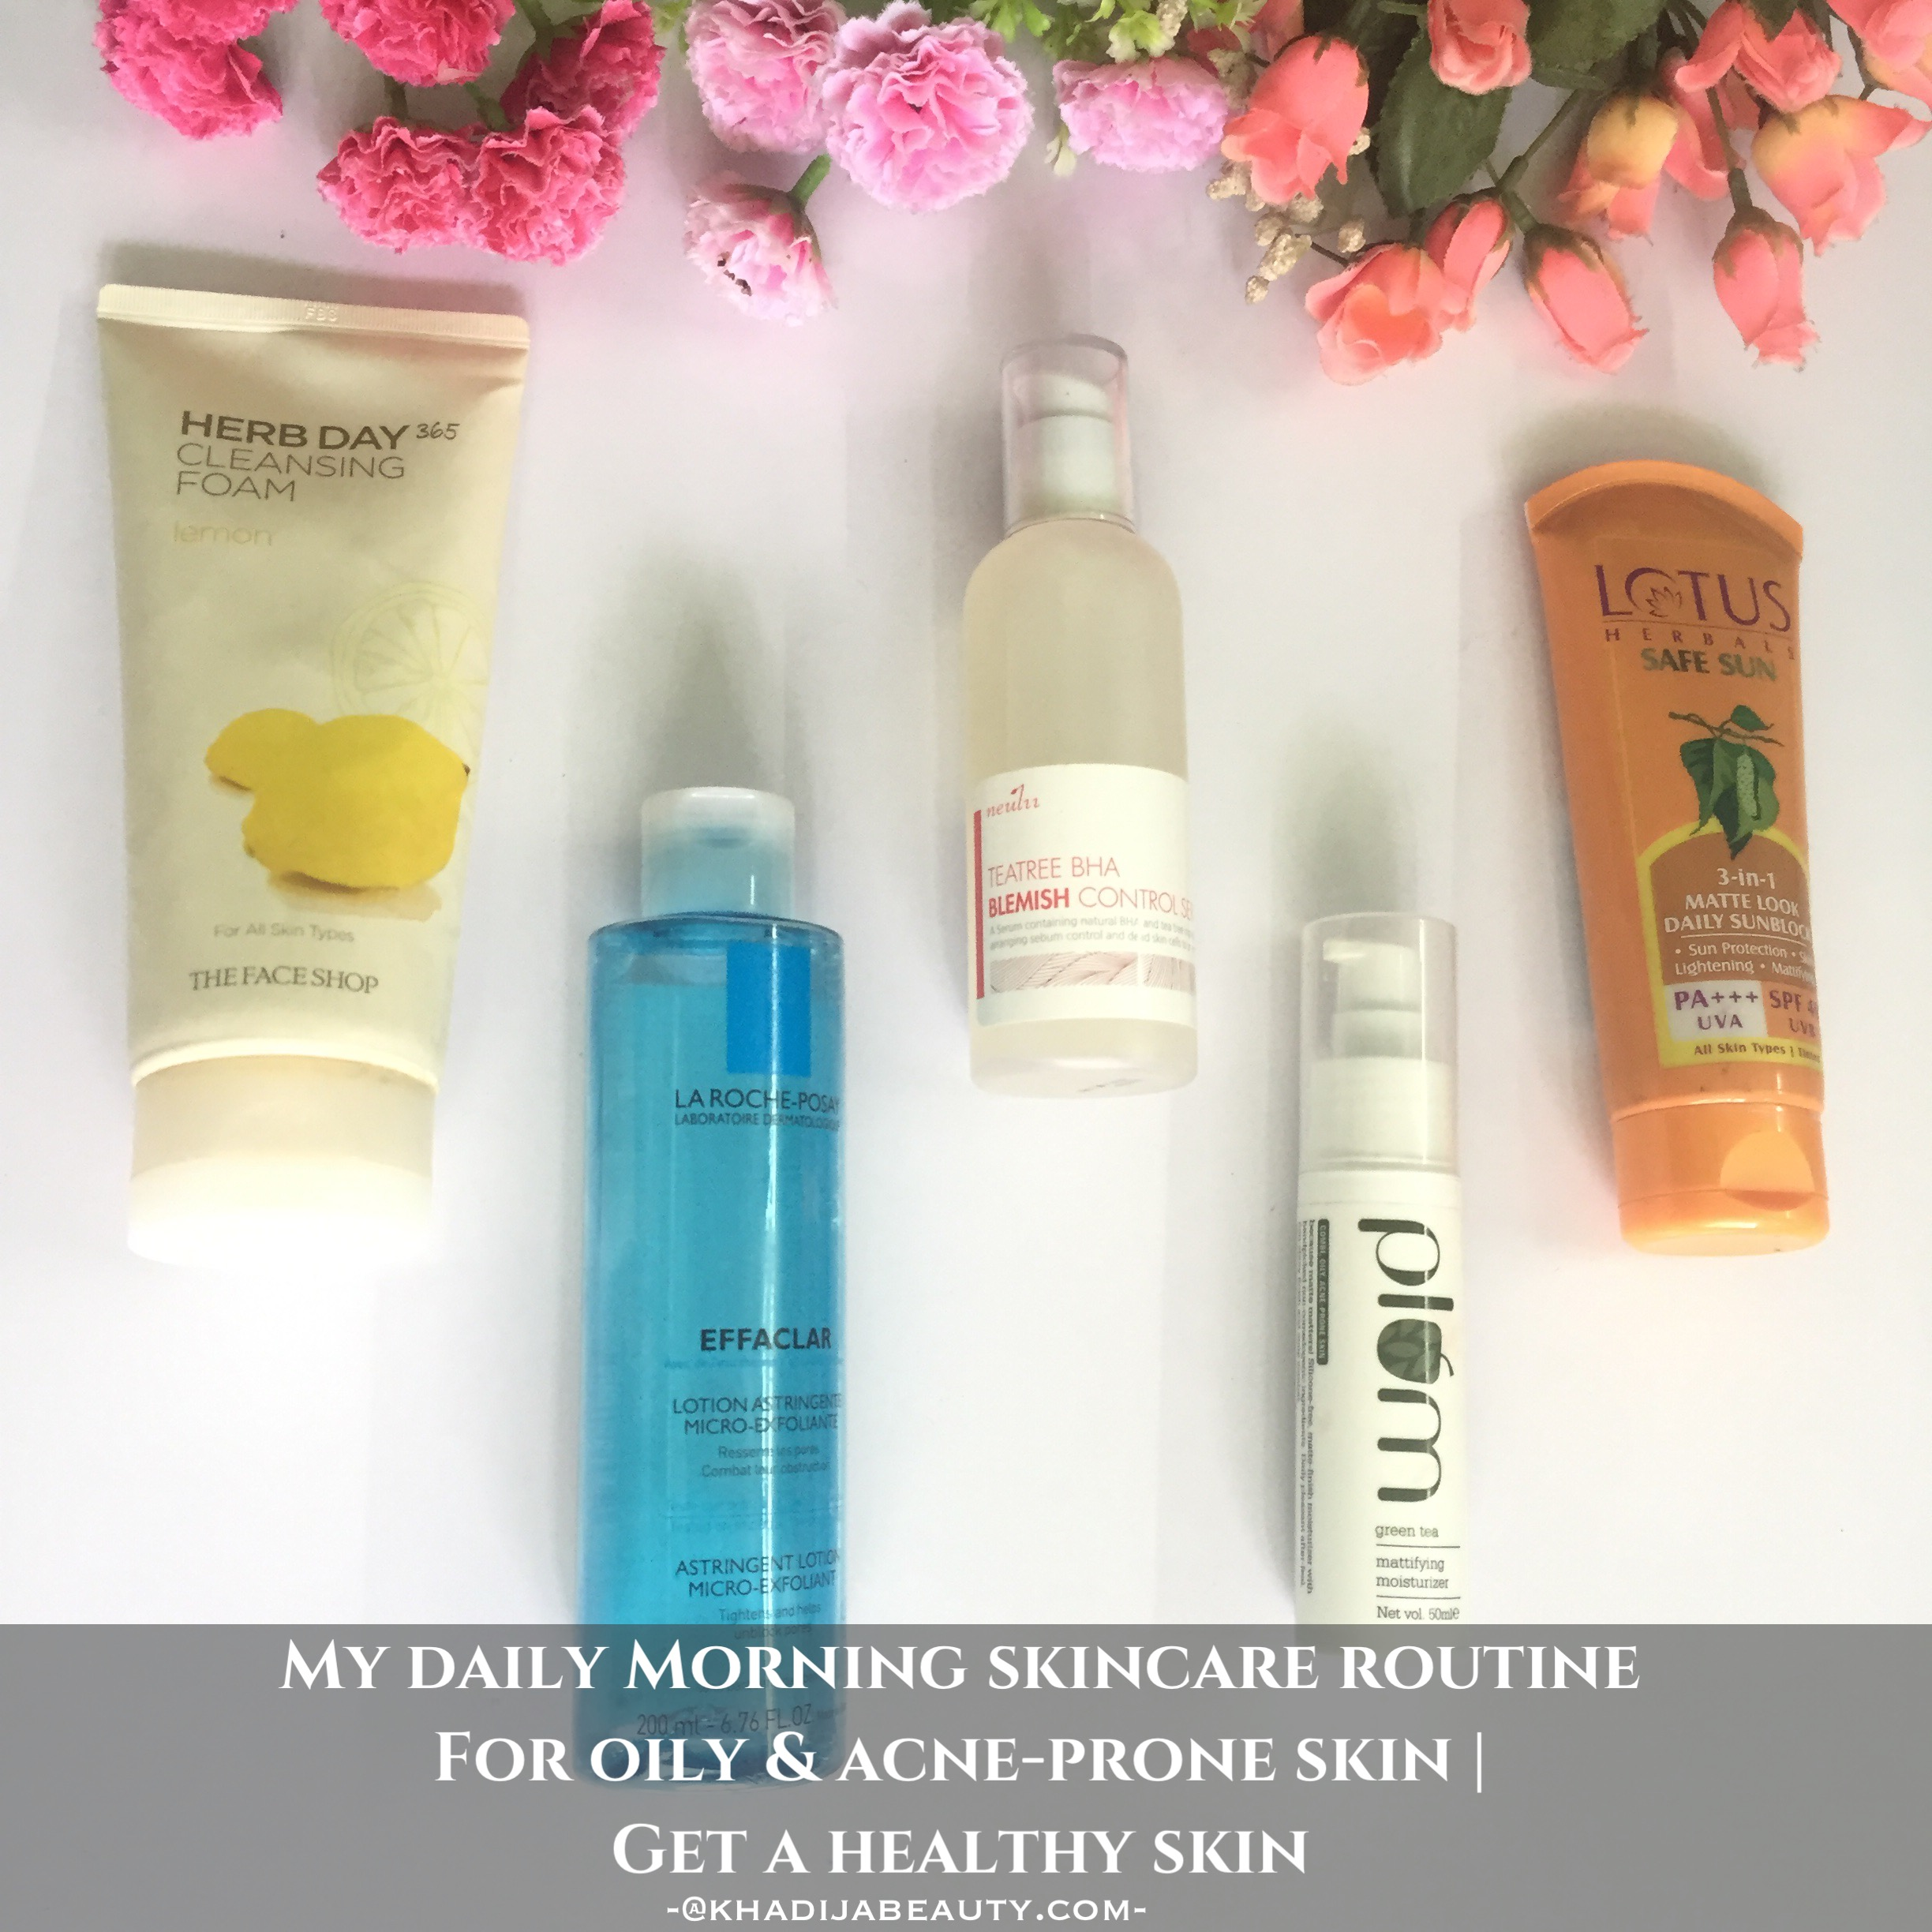 My daily morning skincare routine for oily acne-prone skin| Get healthy Skin